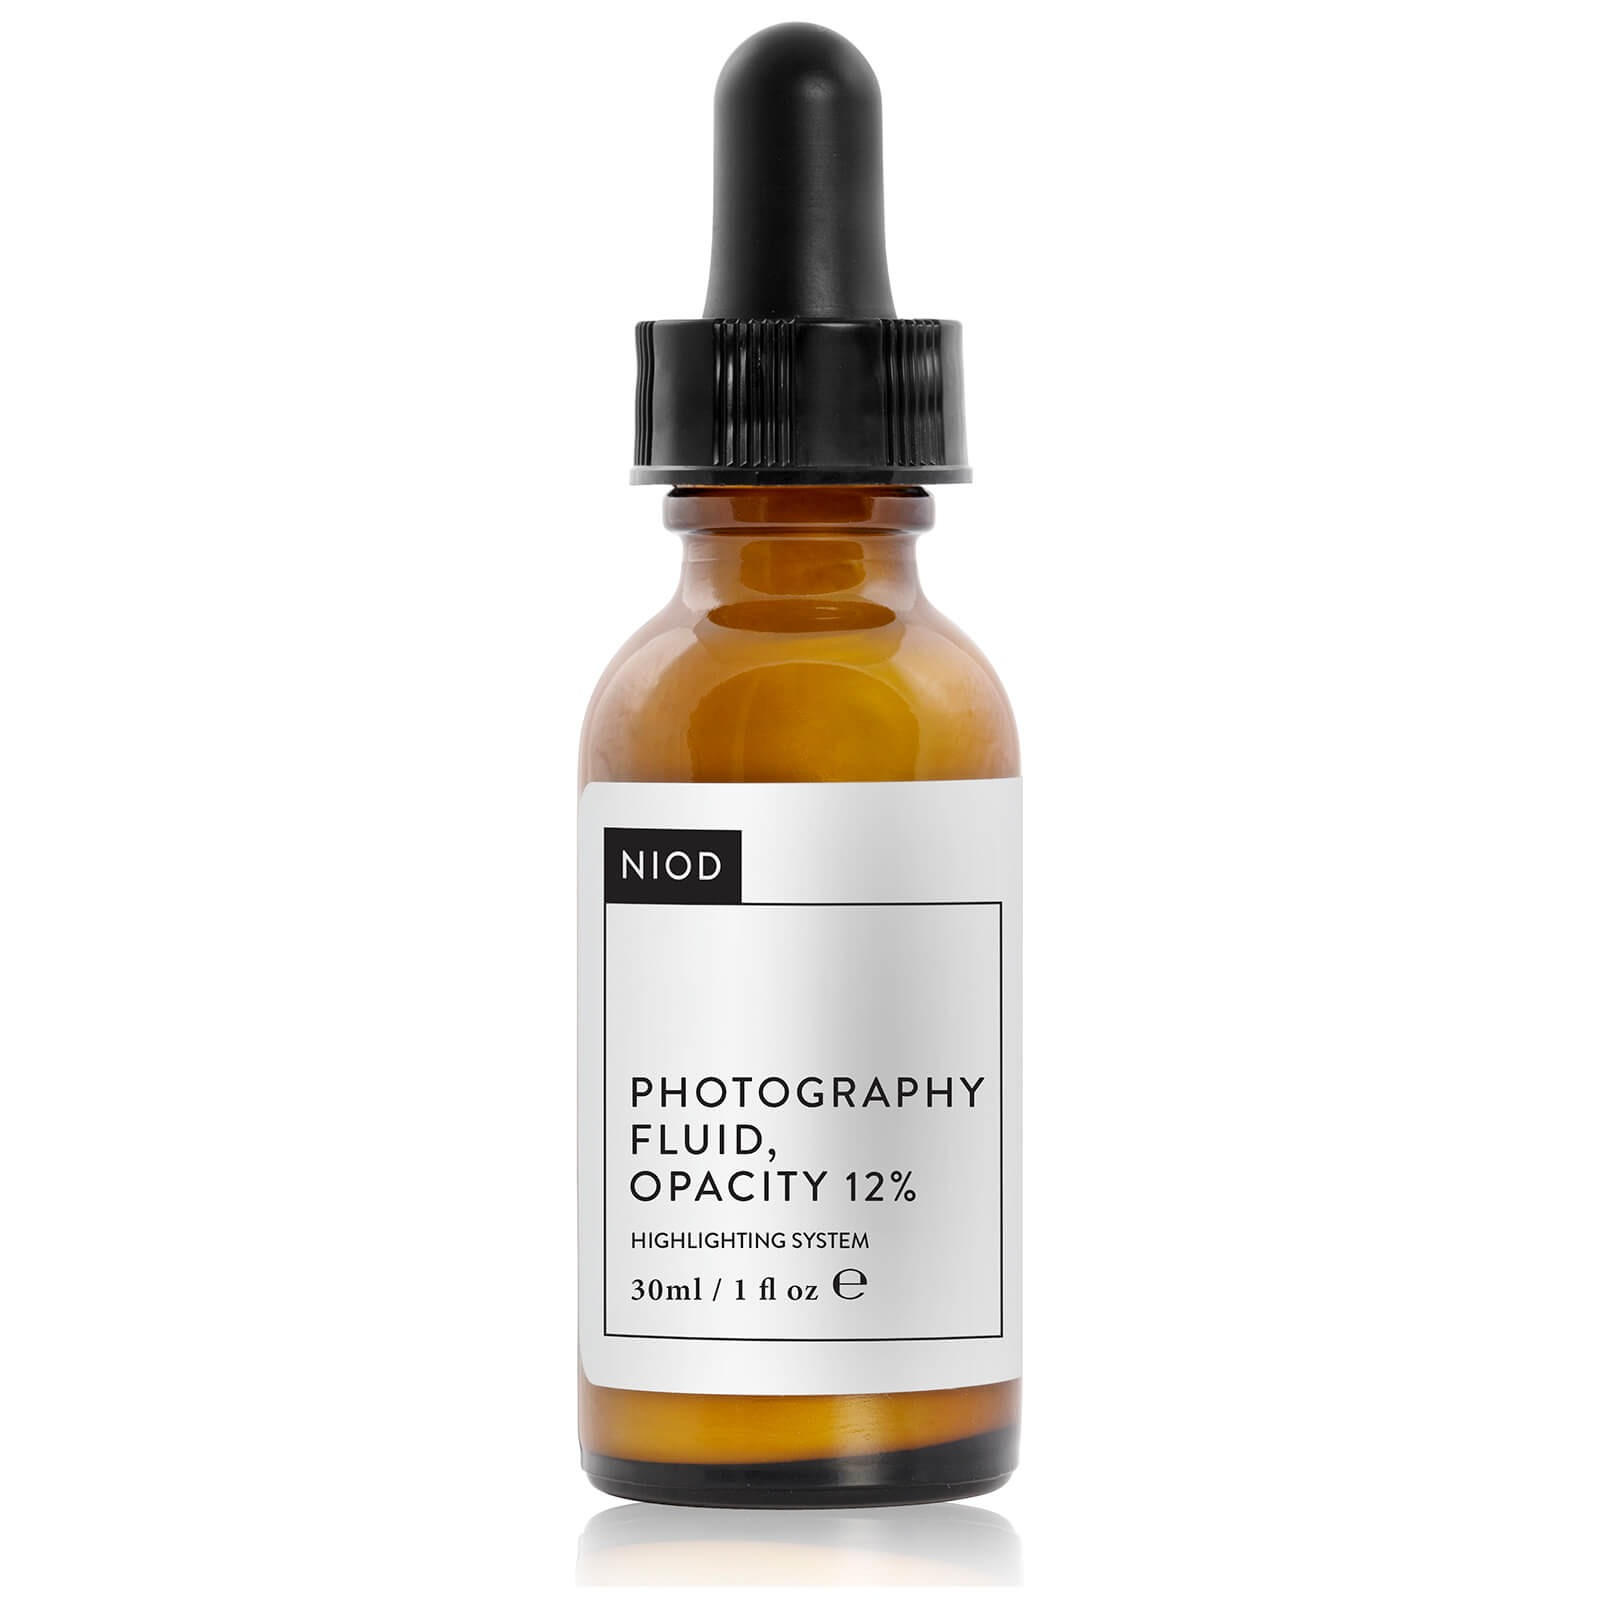 SkinStore.com:NIOD Photography Fluid, Colorless, Opacity 12% (30ml) 20% OFF